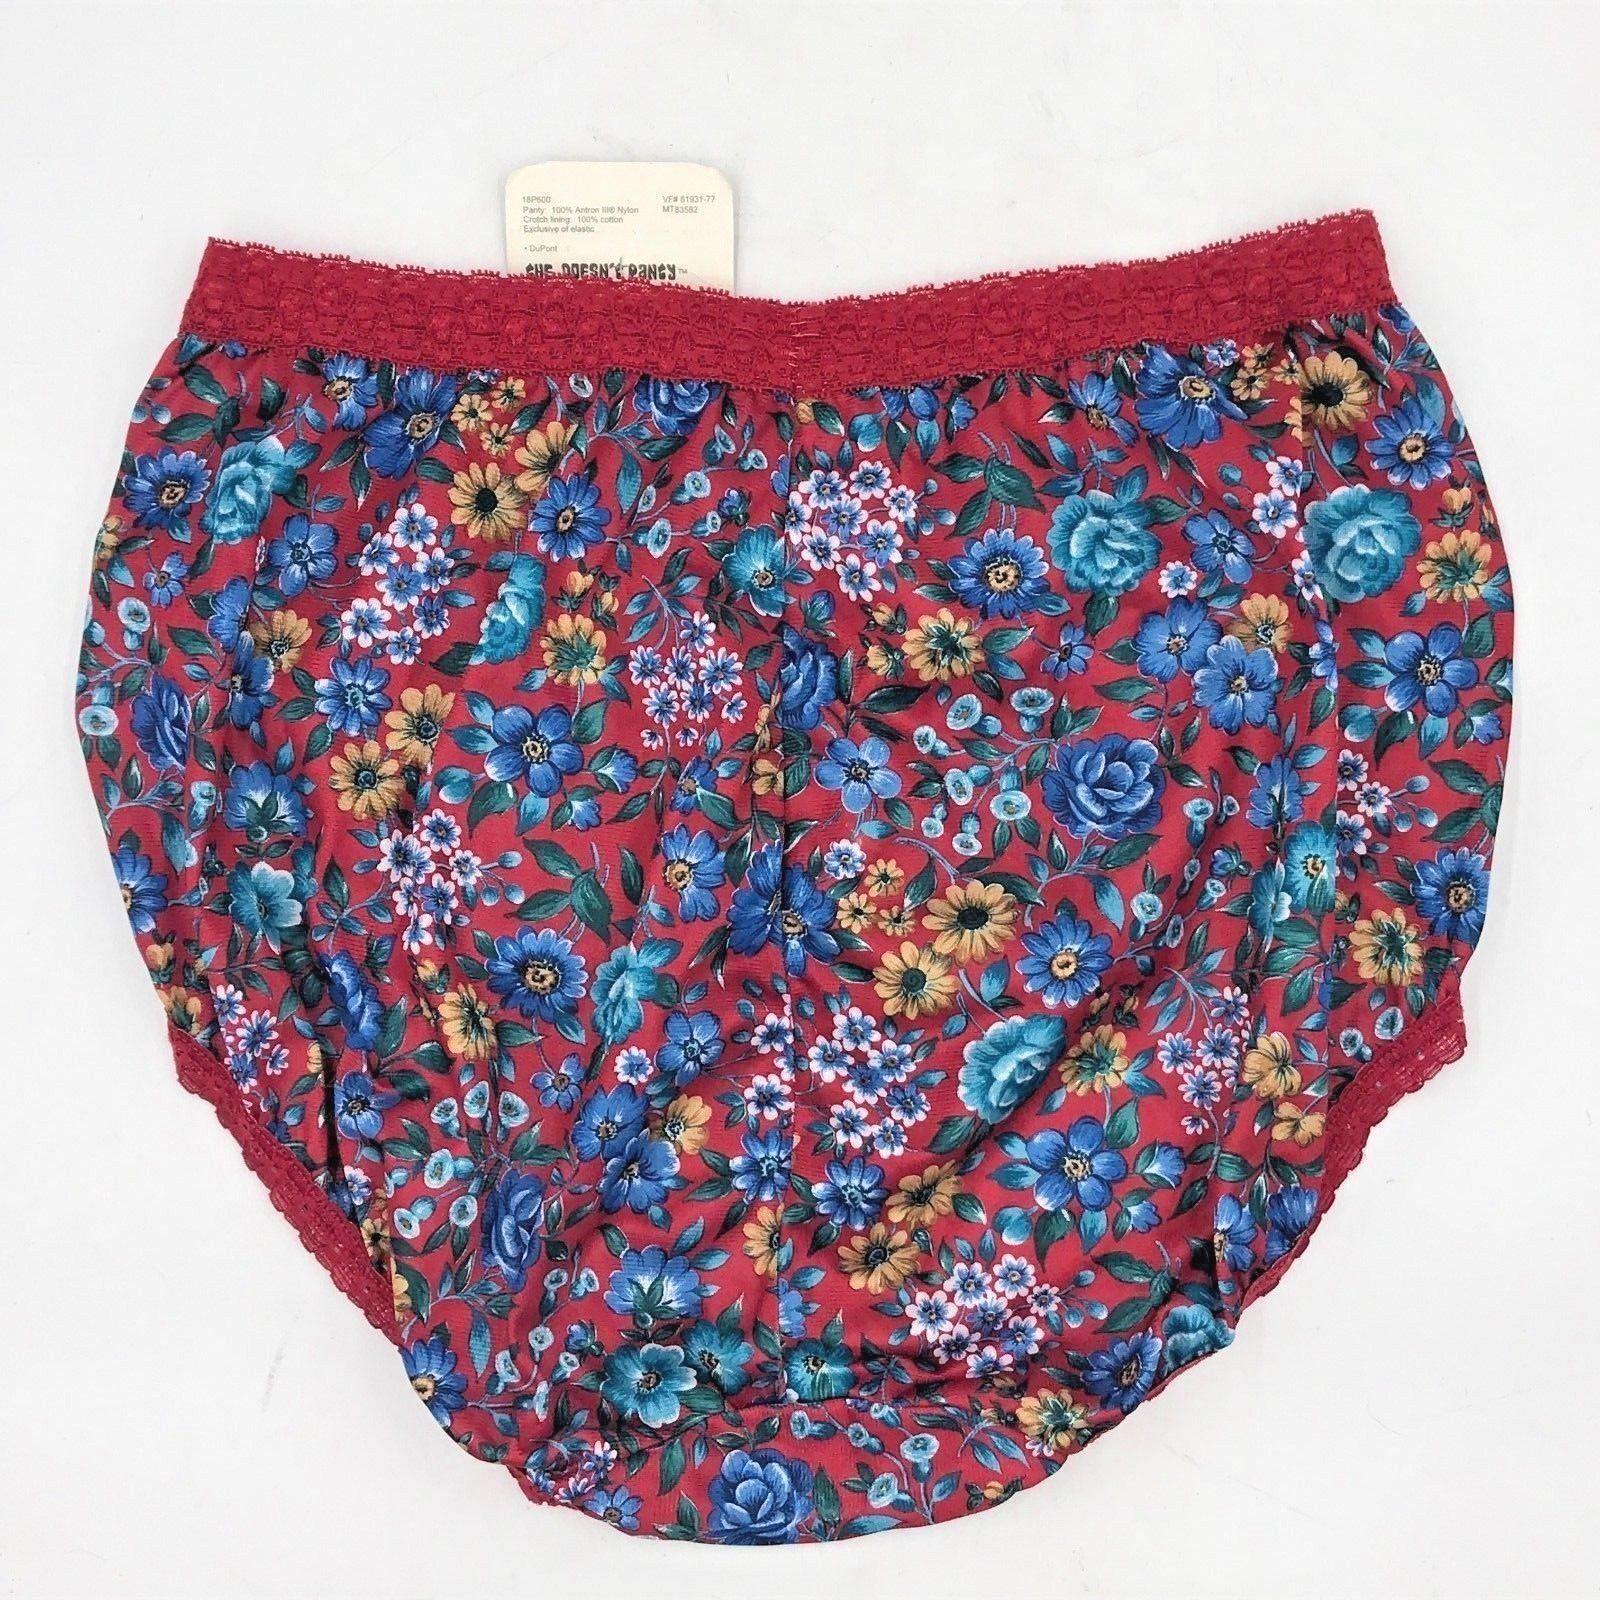 36f5f20b5 Vintage Sears The Doesnt Panty Brief size 7 NWT Backseam Red Nylon Blue  Roses AC